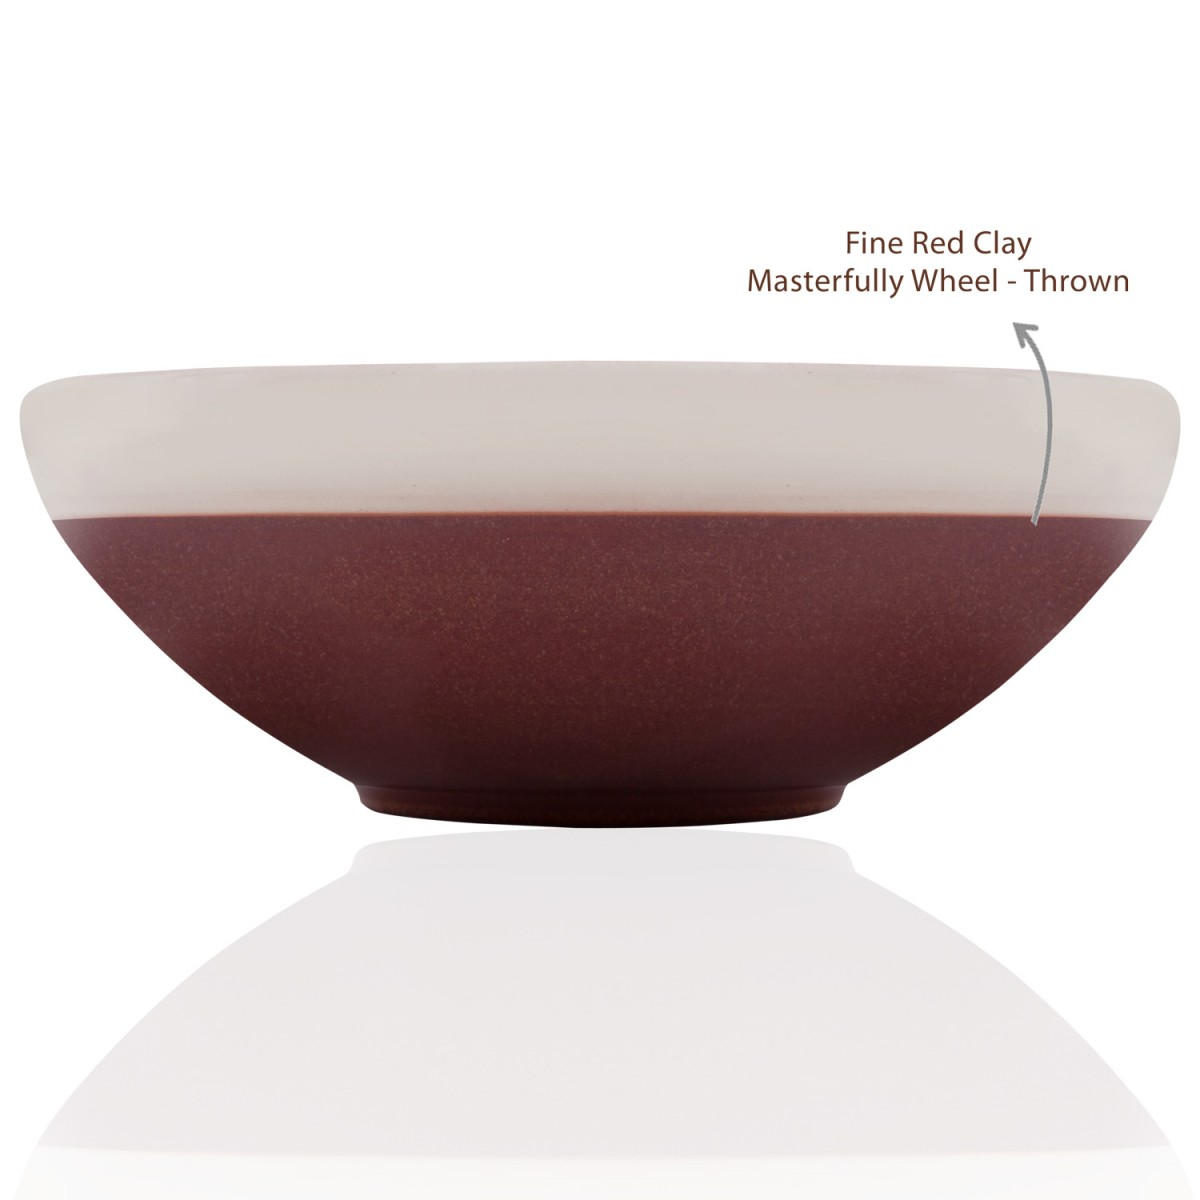 Decorative Bowls for Tables -A